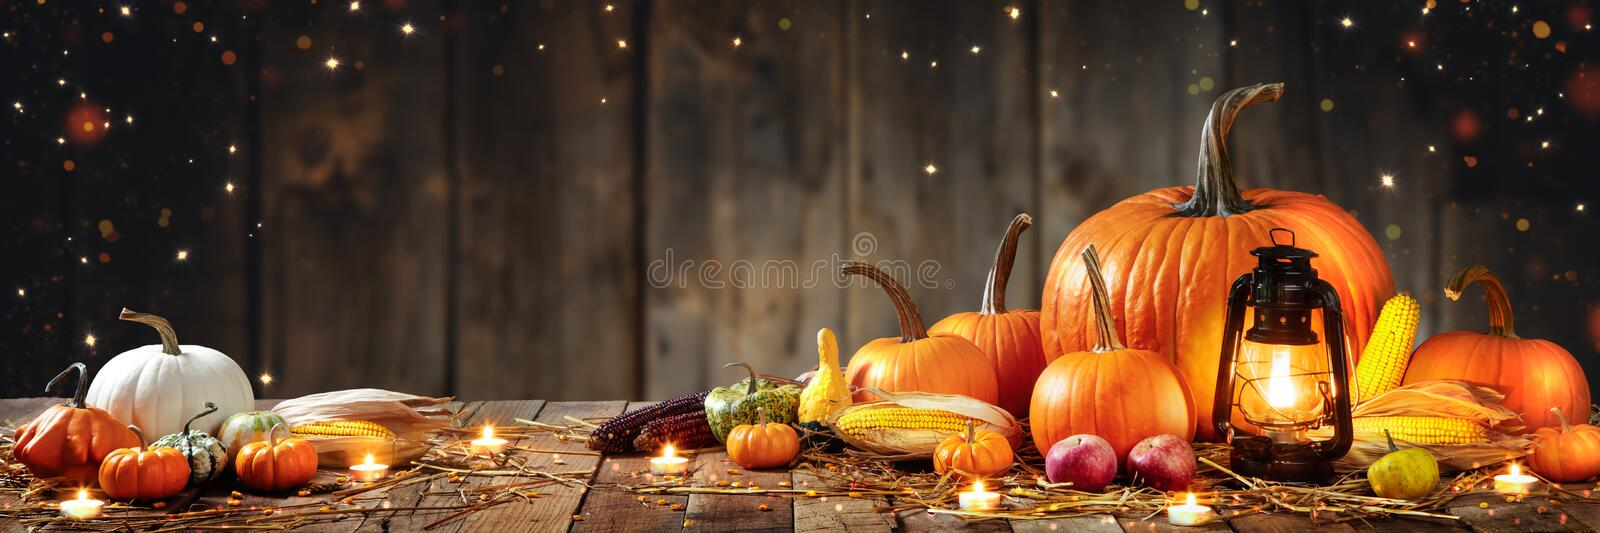 Table With Lantern And Candles Decorated With Pumpkins, Corncobs, Apples And Gourds stock photography